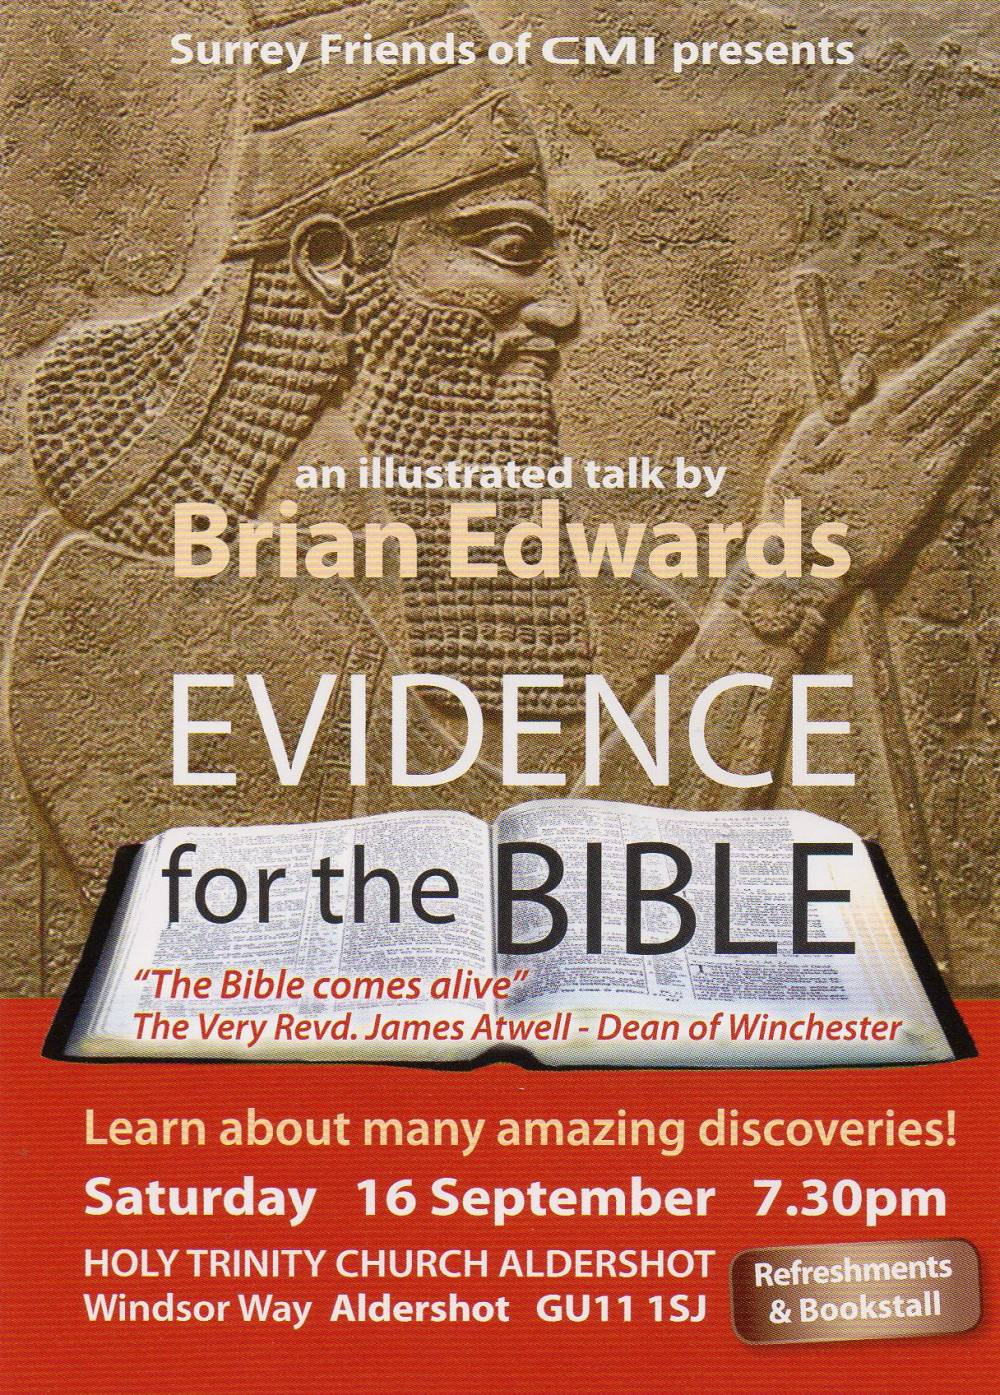 evidence-for-the-bible-1000x1395.jpg